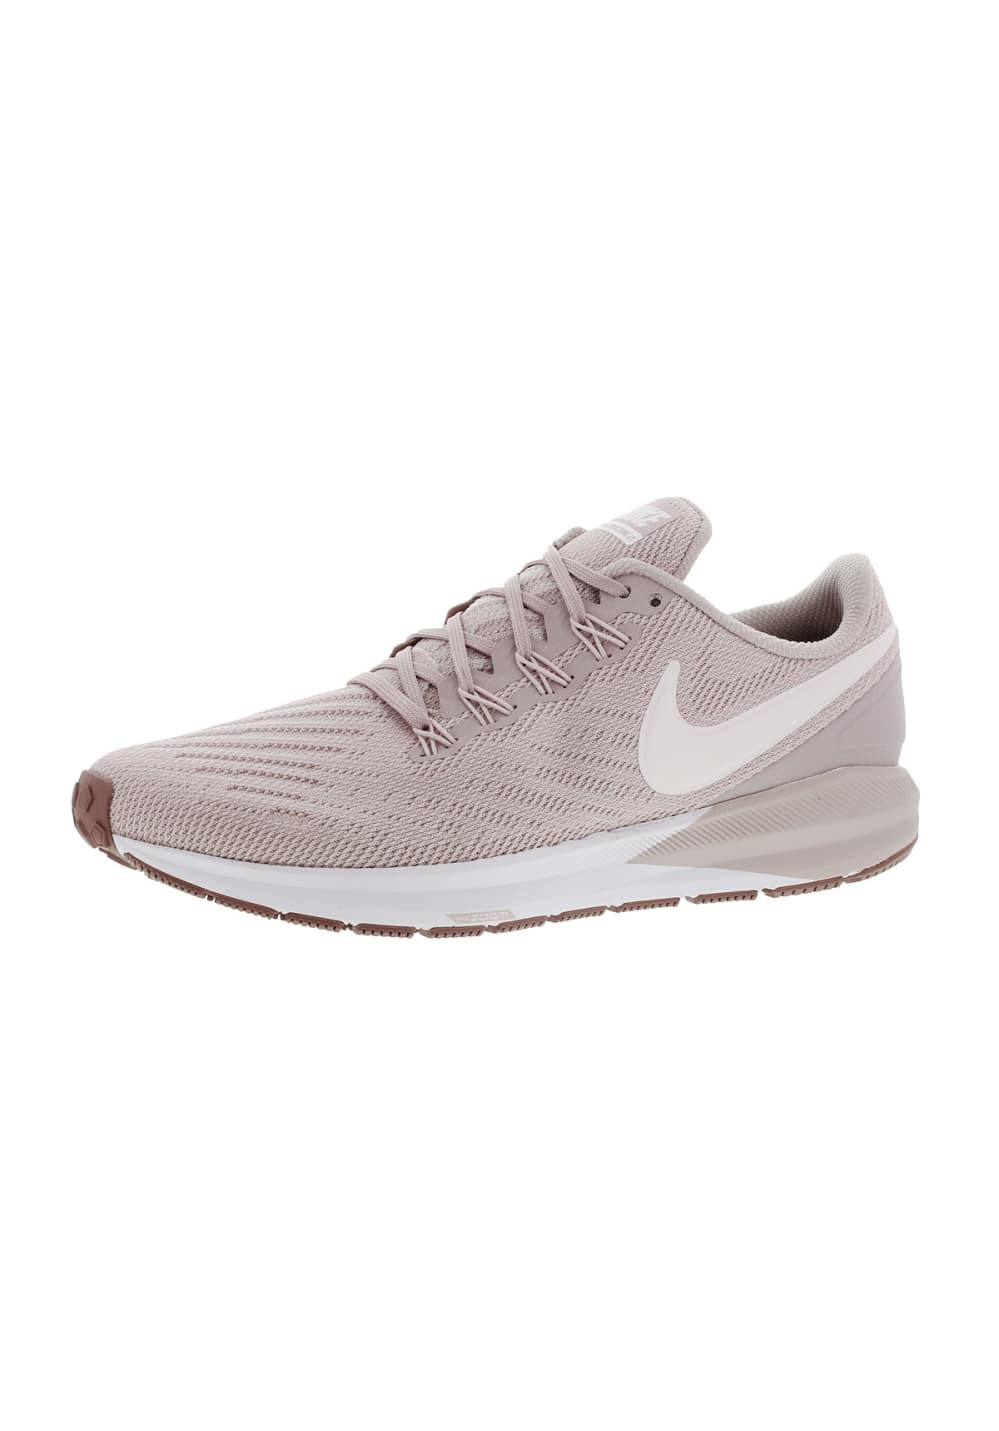 9d671f76e3 Nike Air Zoom Structure 22 - Chaussures running pour Femme - Rose ...